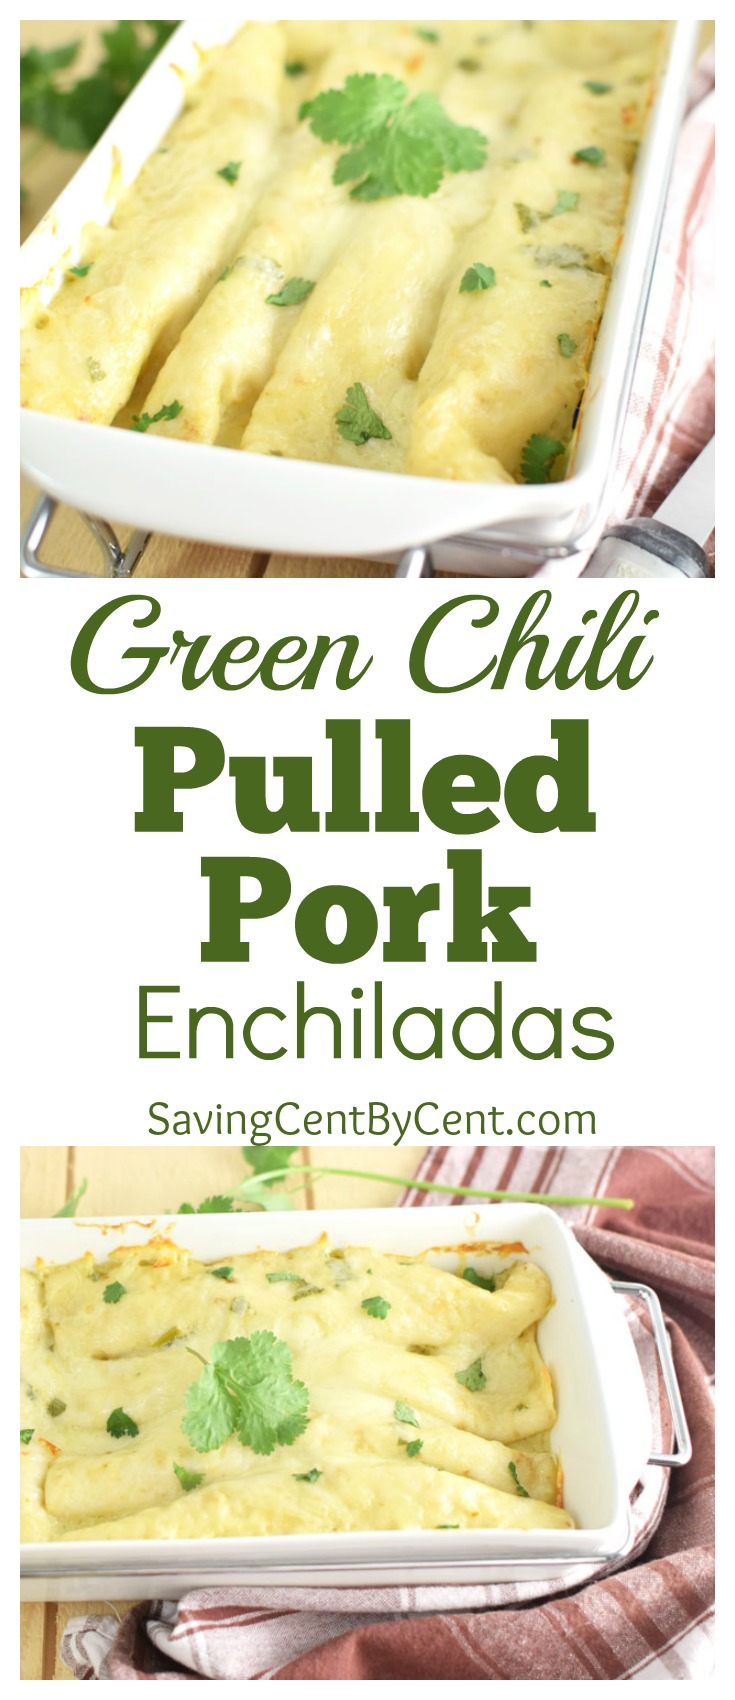 Green Chili Pulled Pork Enchiladas